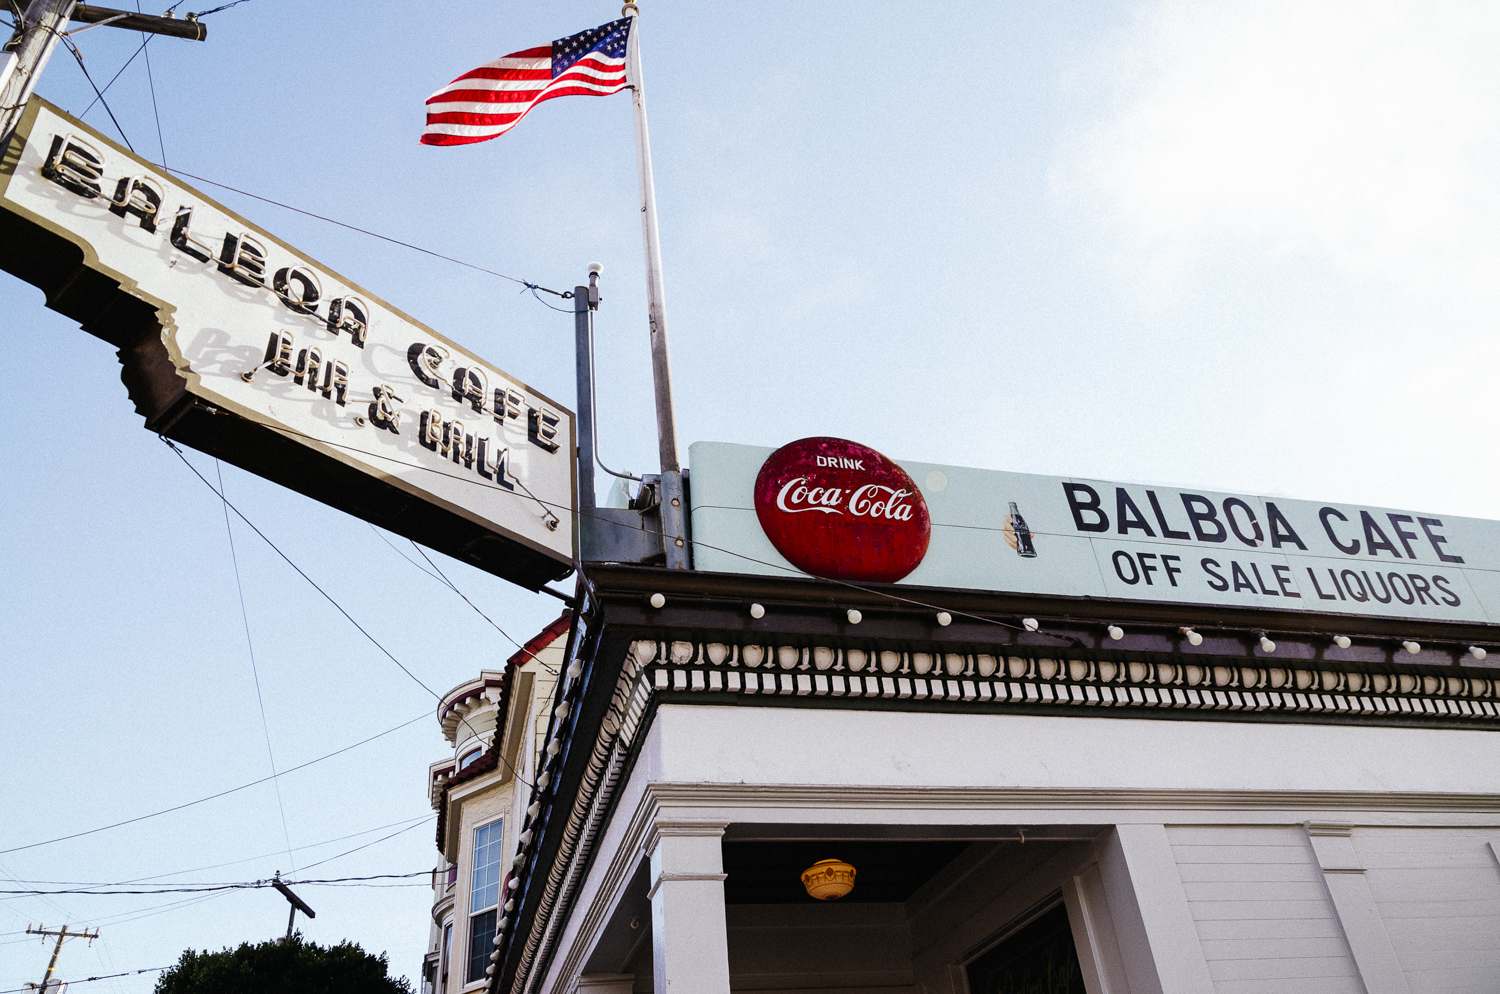 Eater sf - August 7, 2018Historic Balboa Cafe Revamps Menu Under New Chef; Don't Worry, The Burger's Still There